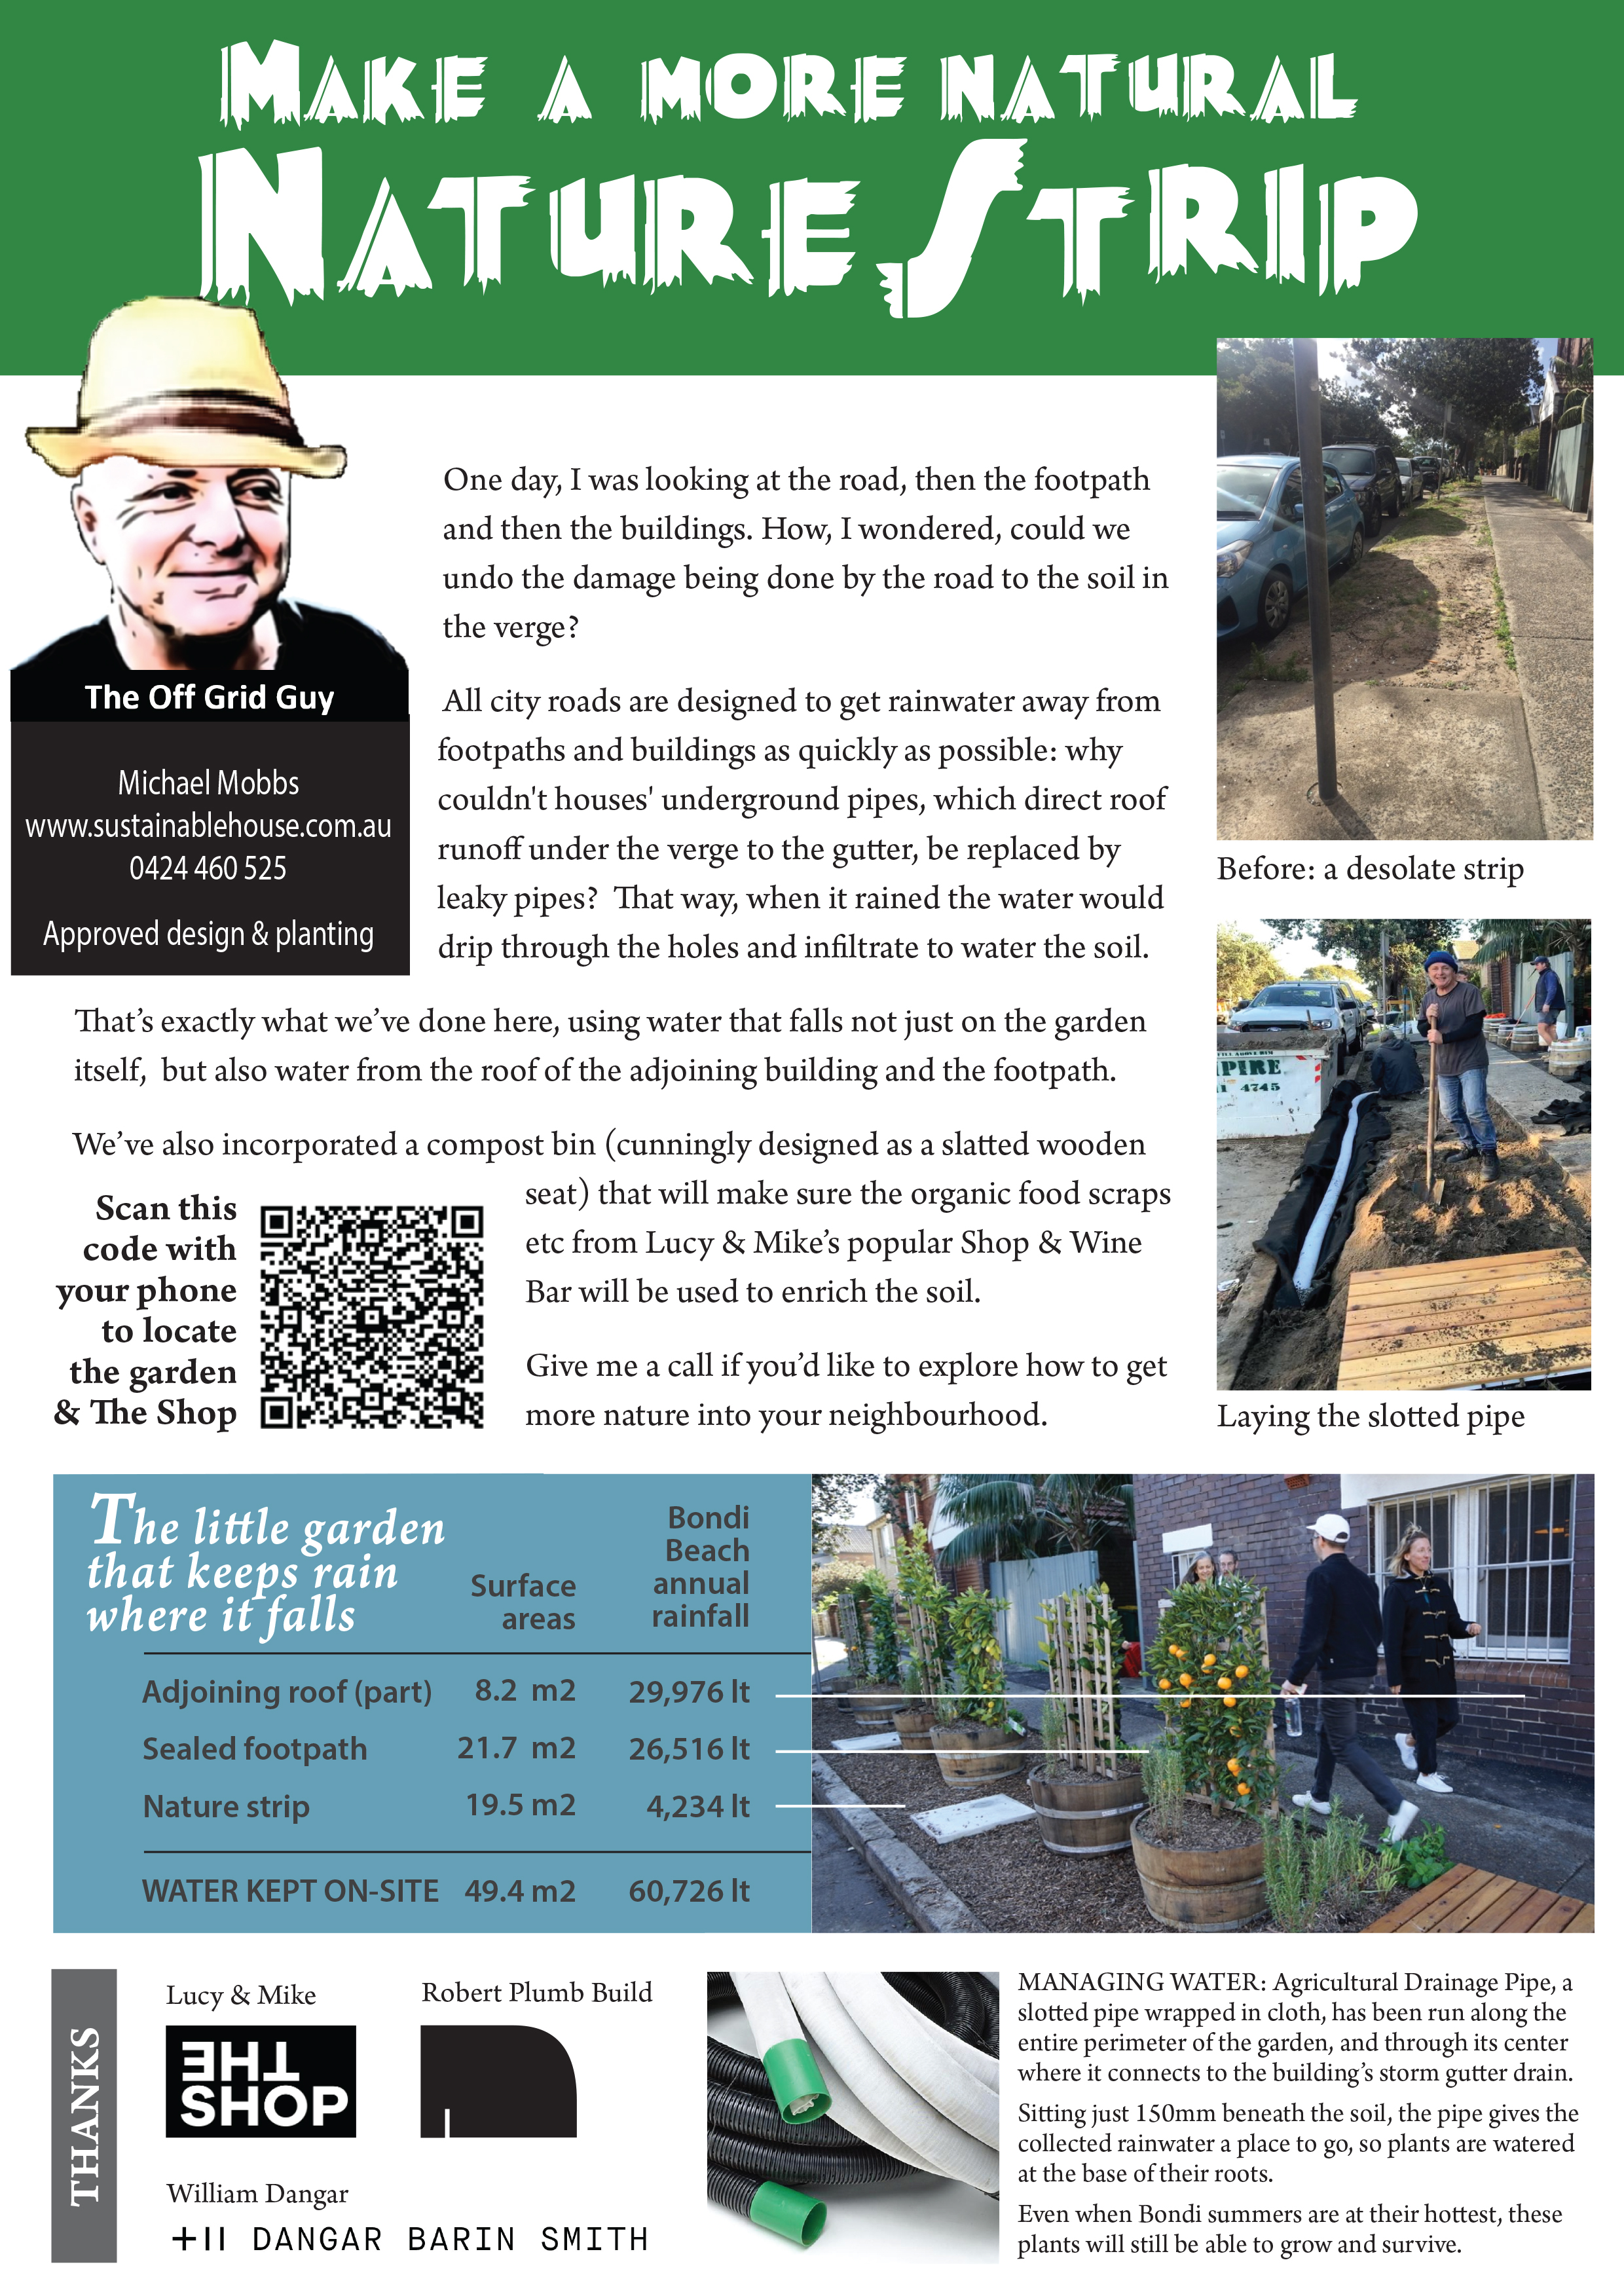 • Summary of how to make a more natural, self-watering nature strip